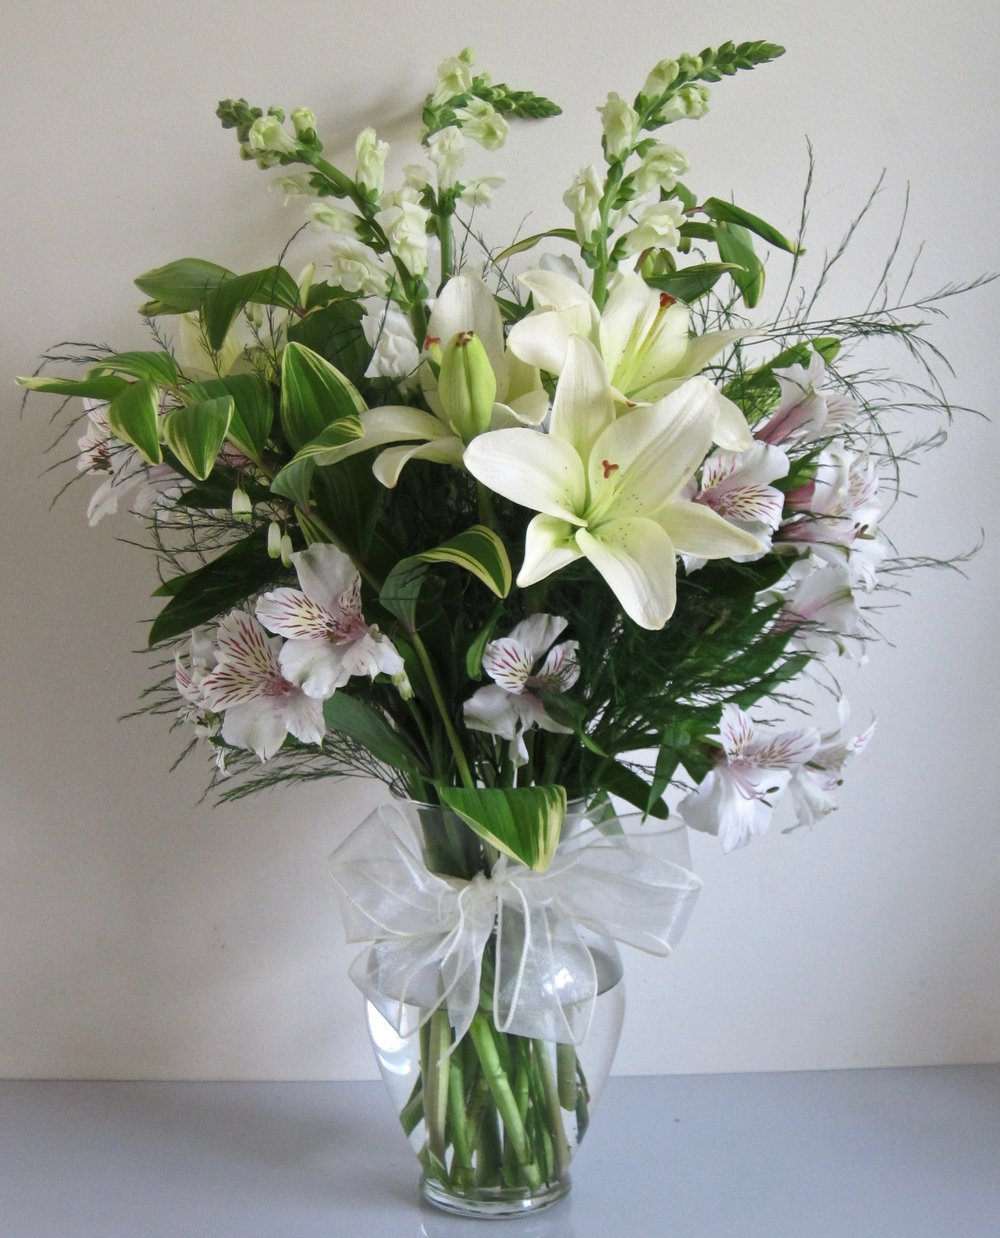 WHITE BOUQUET Lilies, snapdragons and ferns,$55.